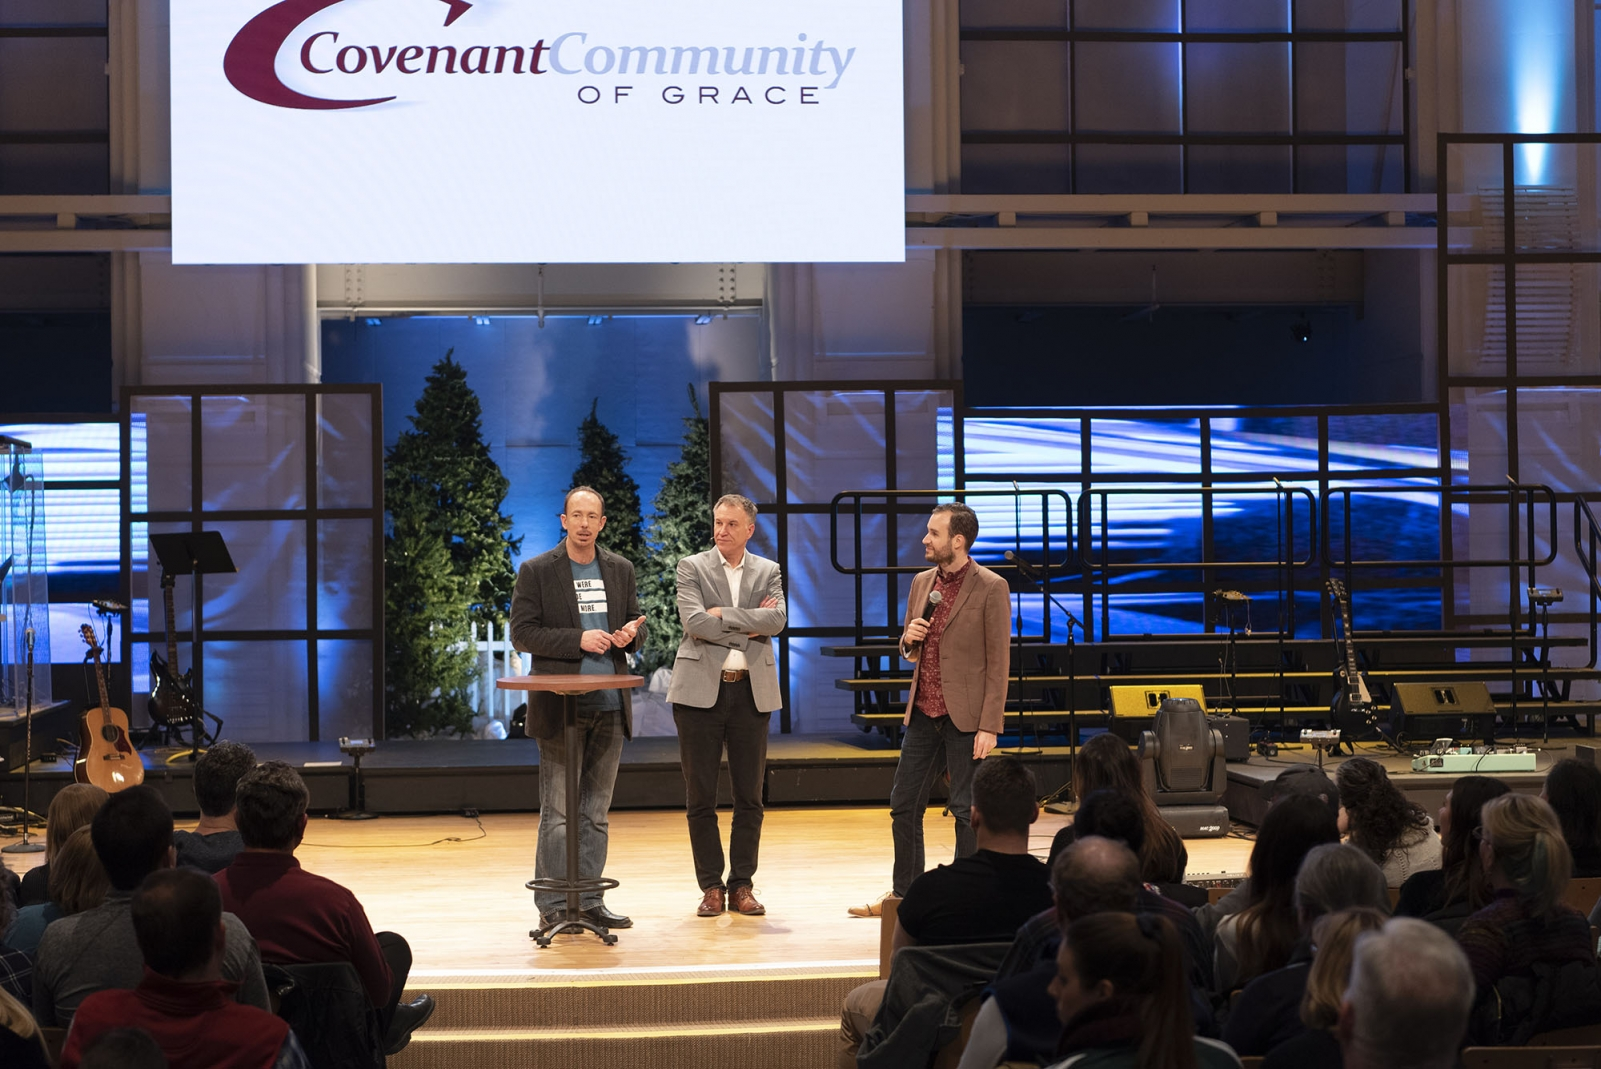 Covenant Community Meeting